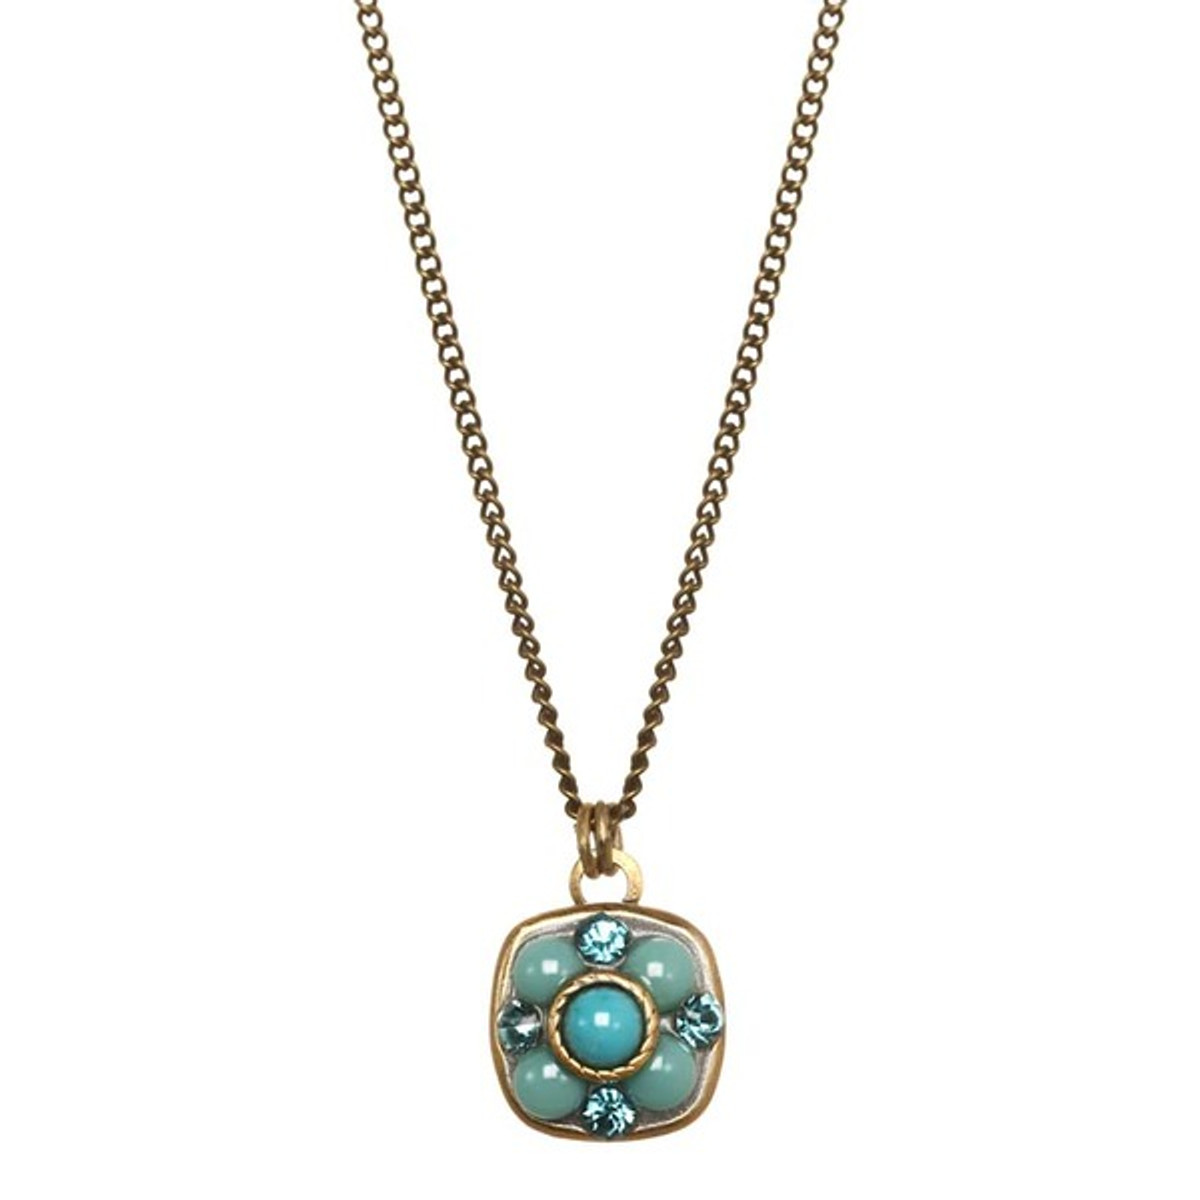 Michal Golan Nile Necklace Turquoise